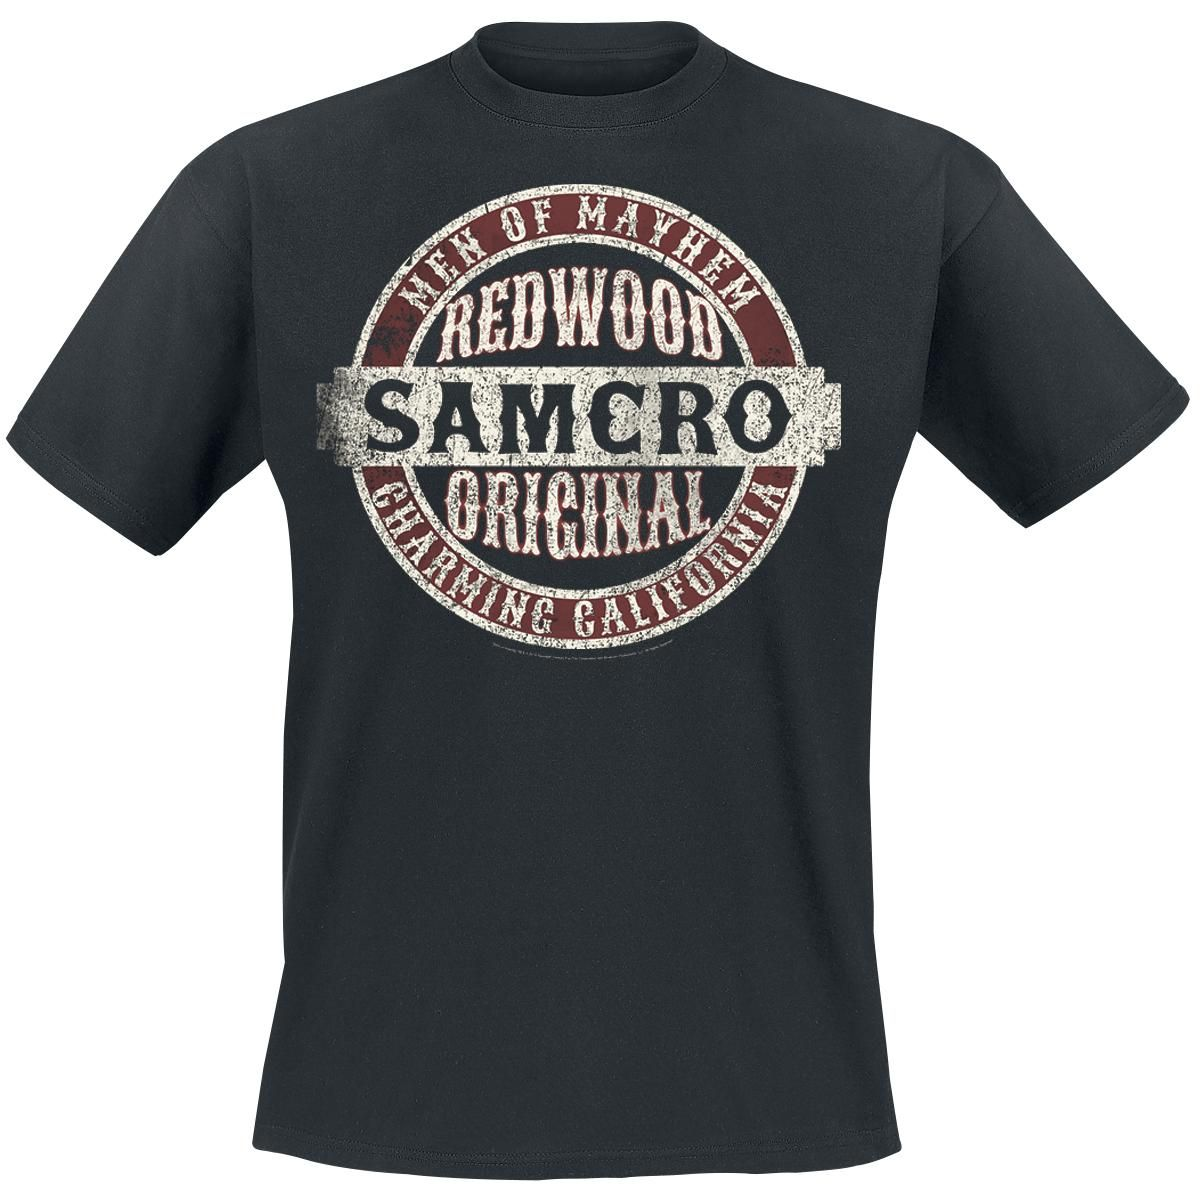 samcro original wishlist pinterest logos originales. Black Bedroom Furniture Sets. Home Design Ideas